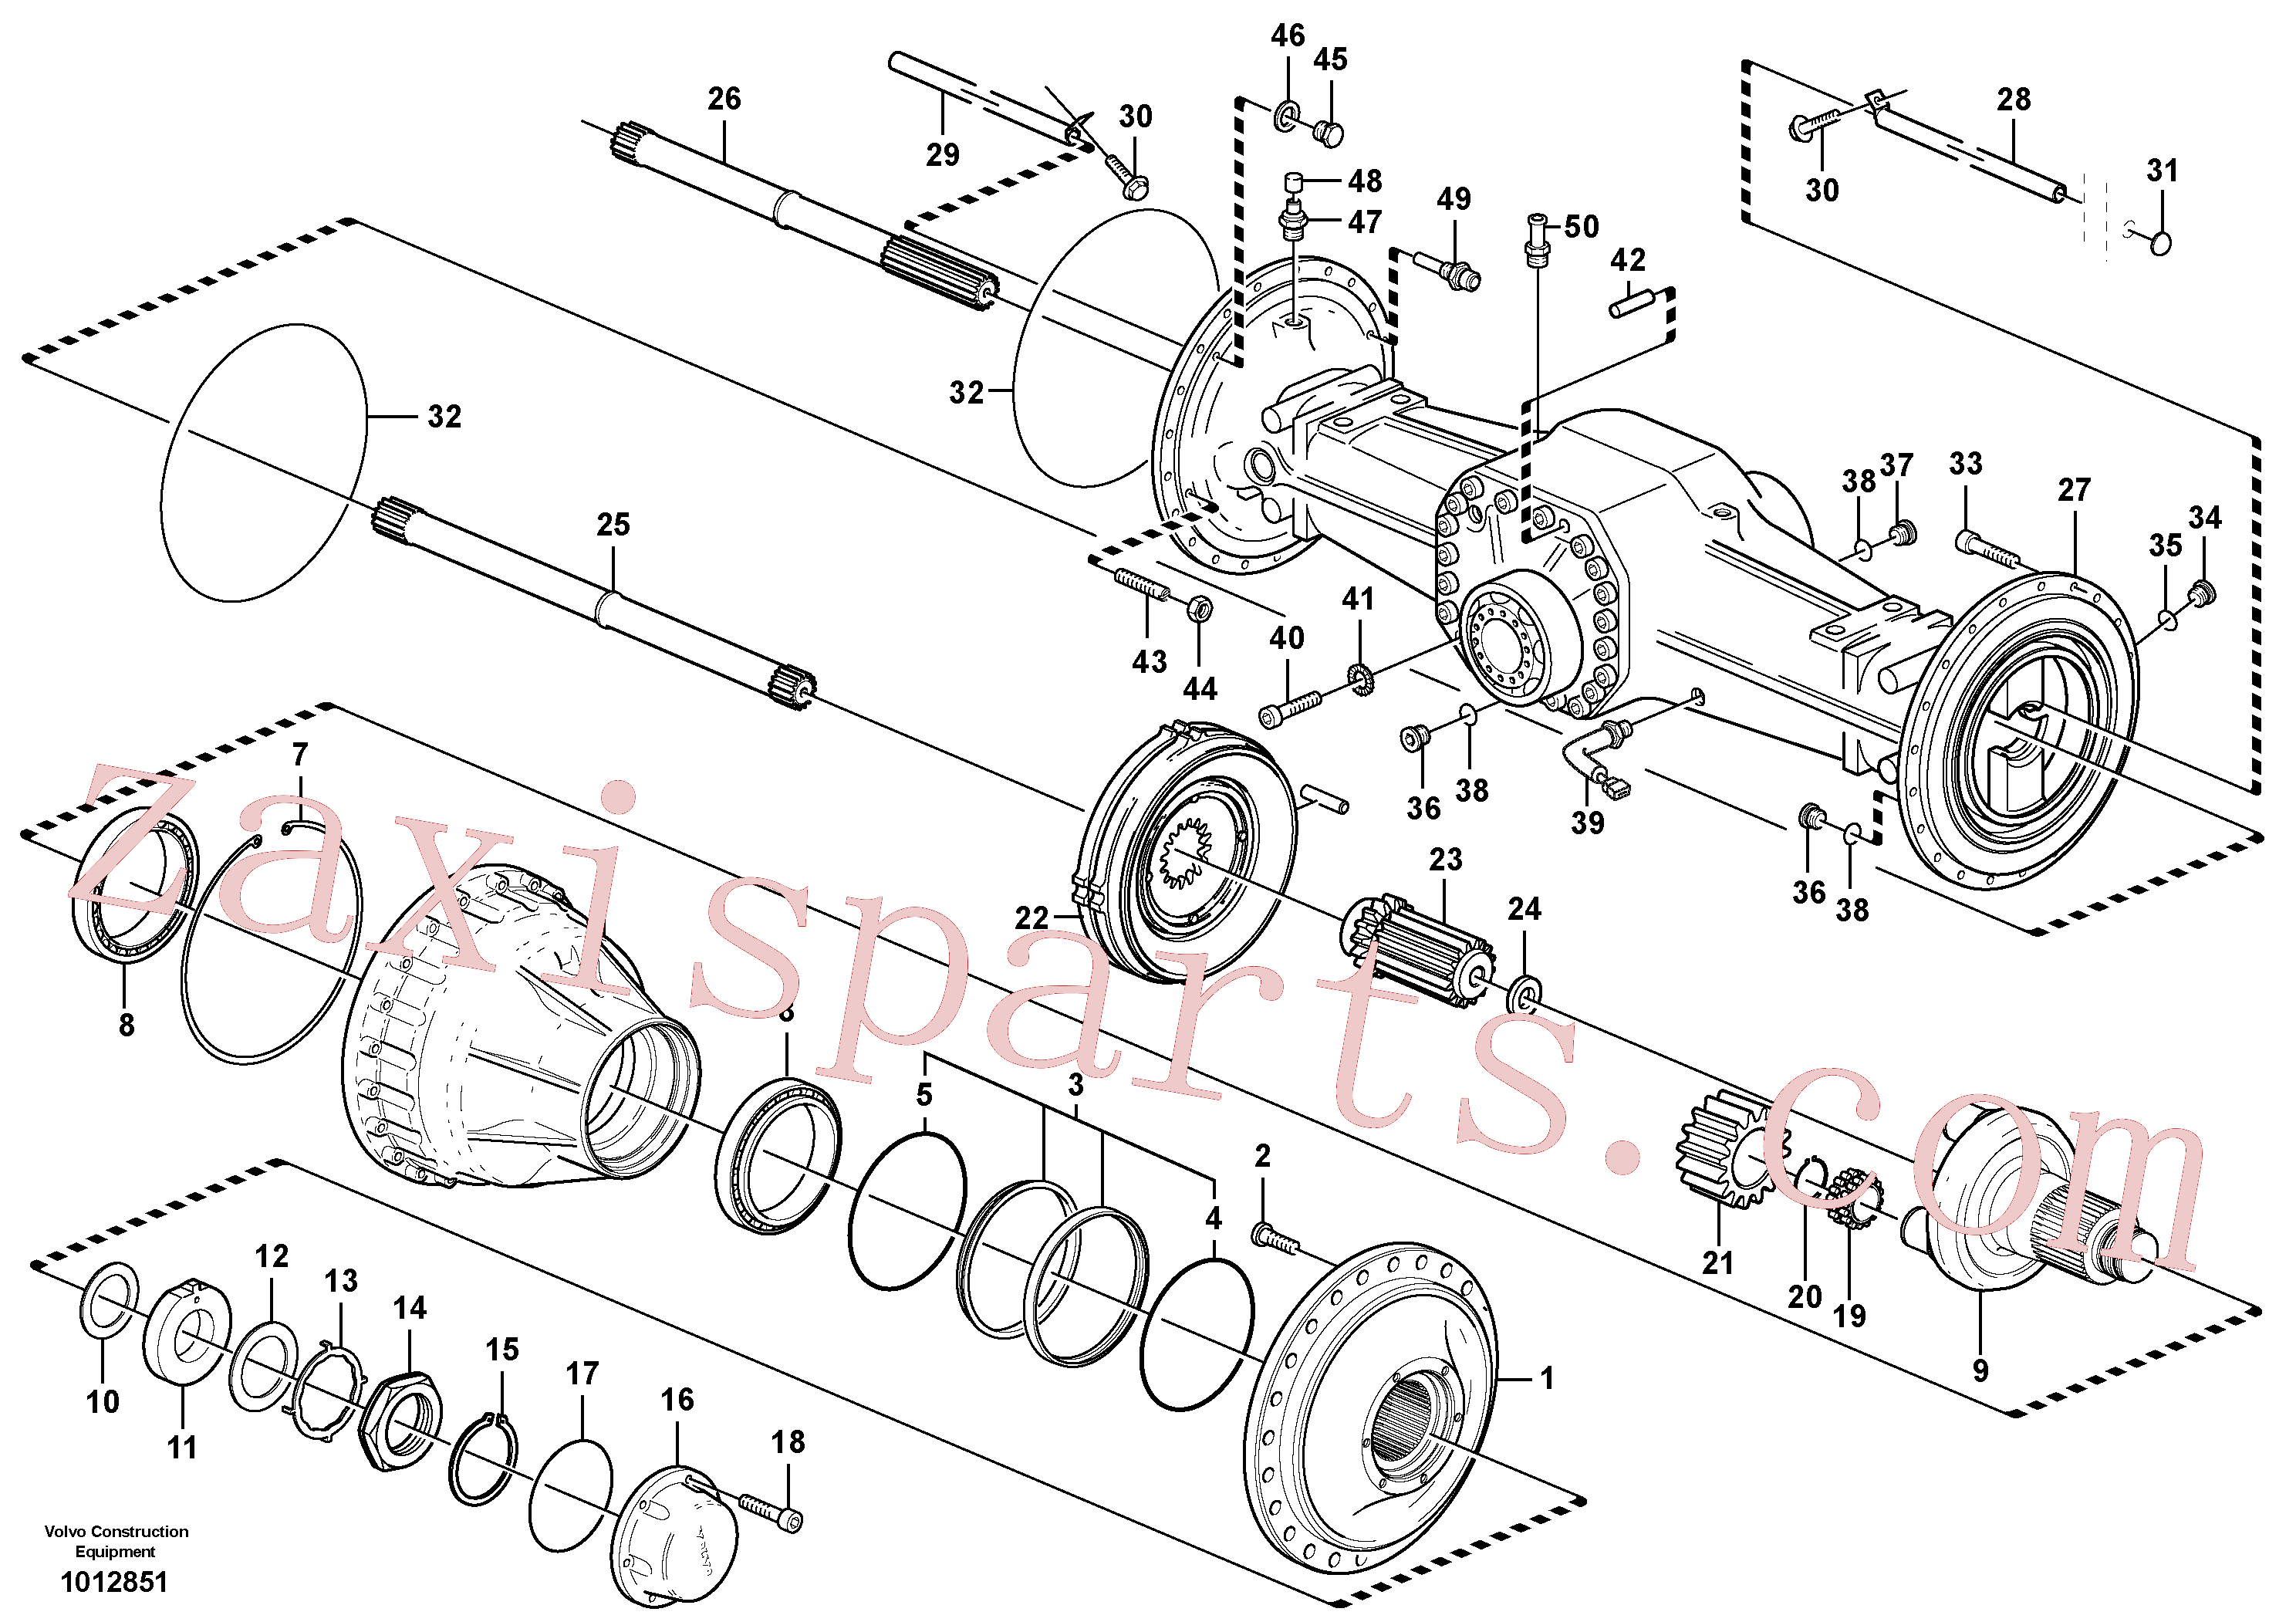 VOE11705205 for Volvo Planetary axle, rear(1012851 assembly)